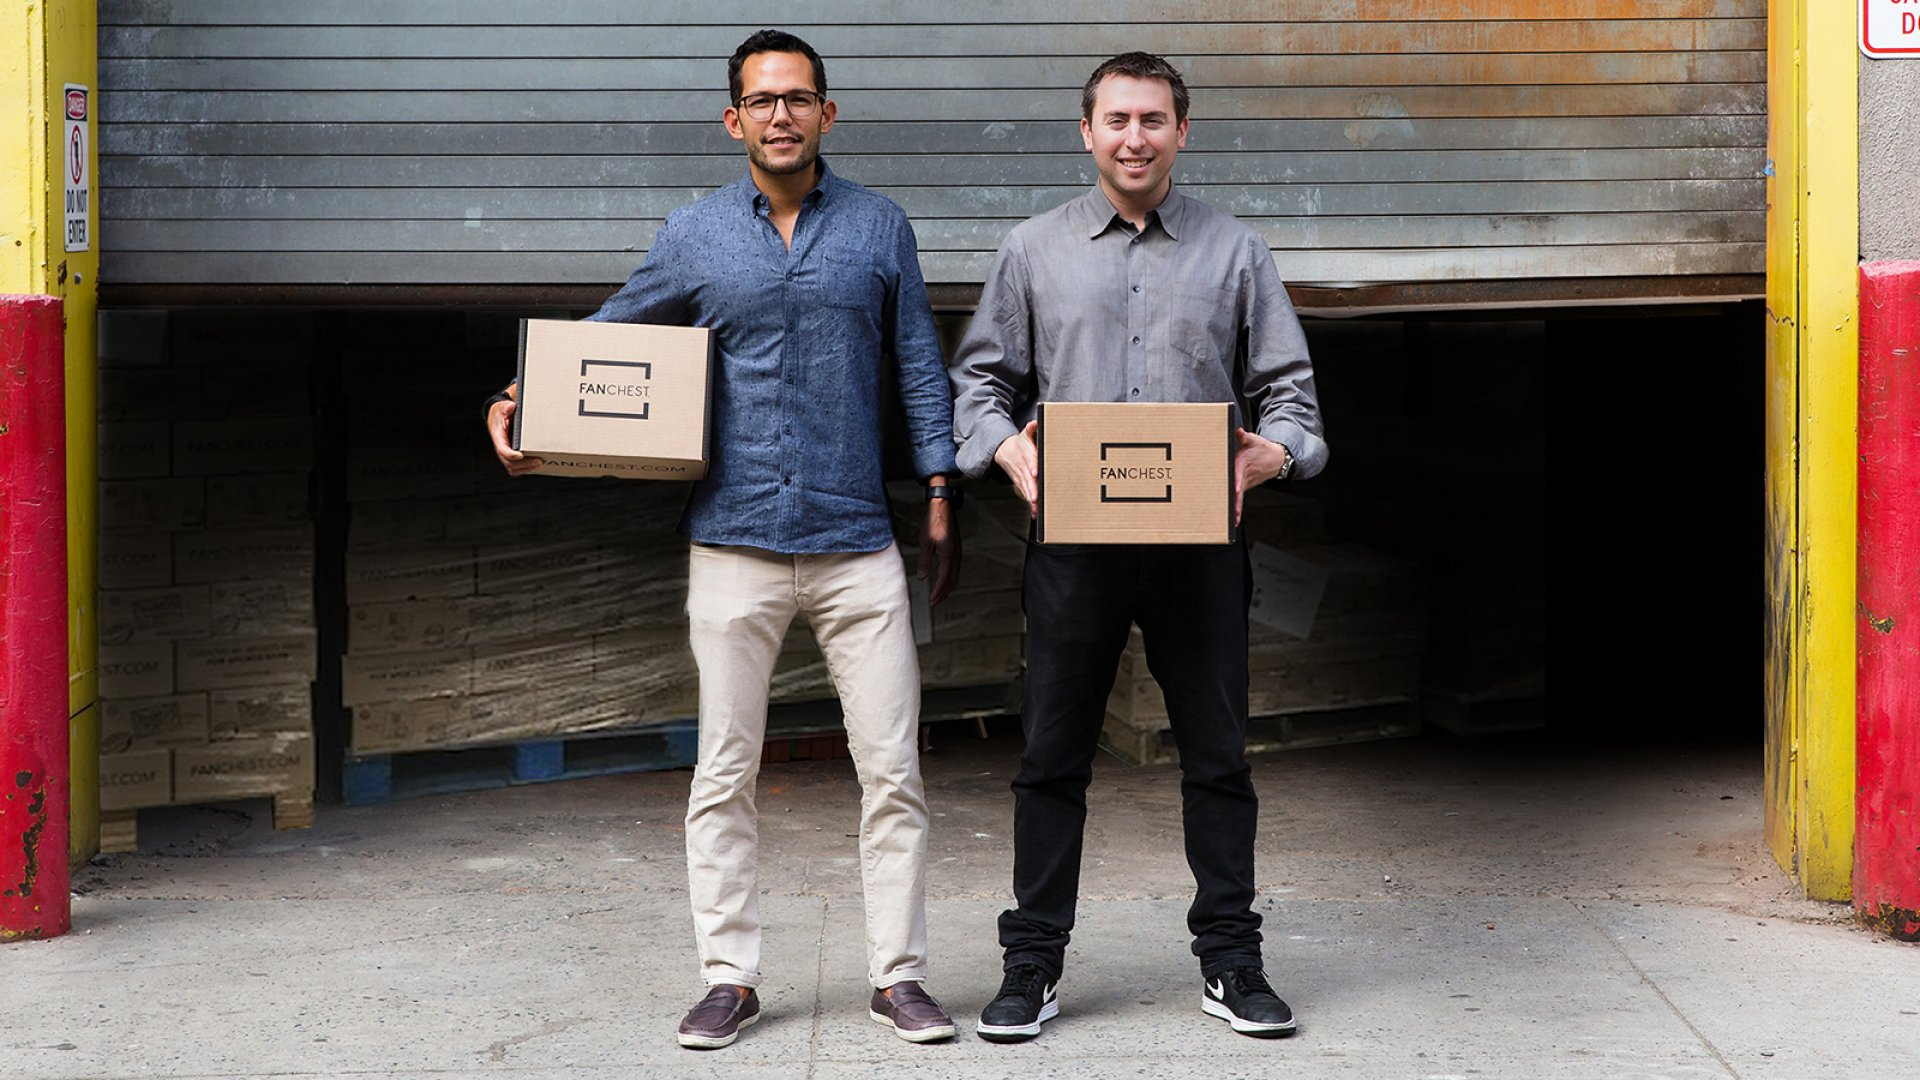 FANCHEST co-founders Jeff Lin (left) and Dan Weinberg.